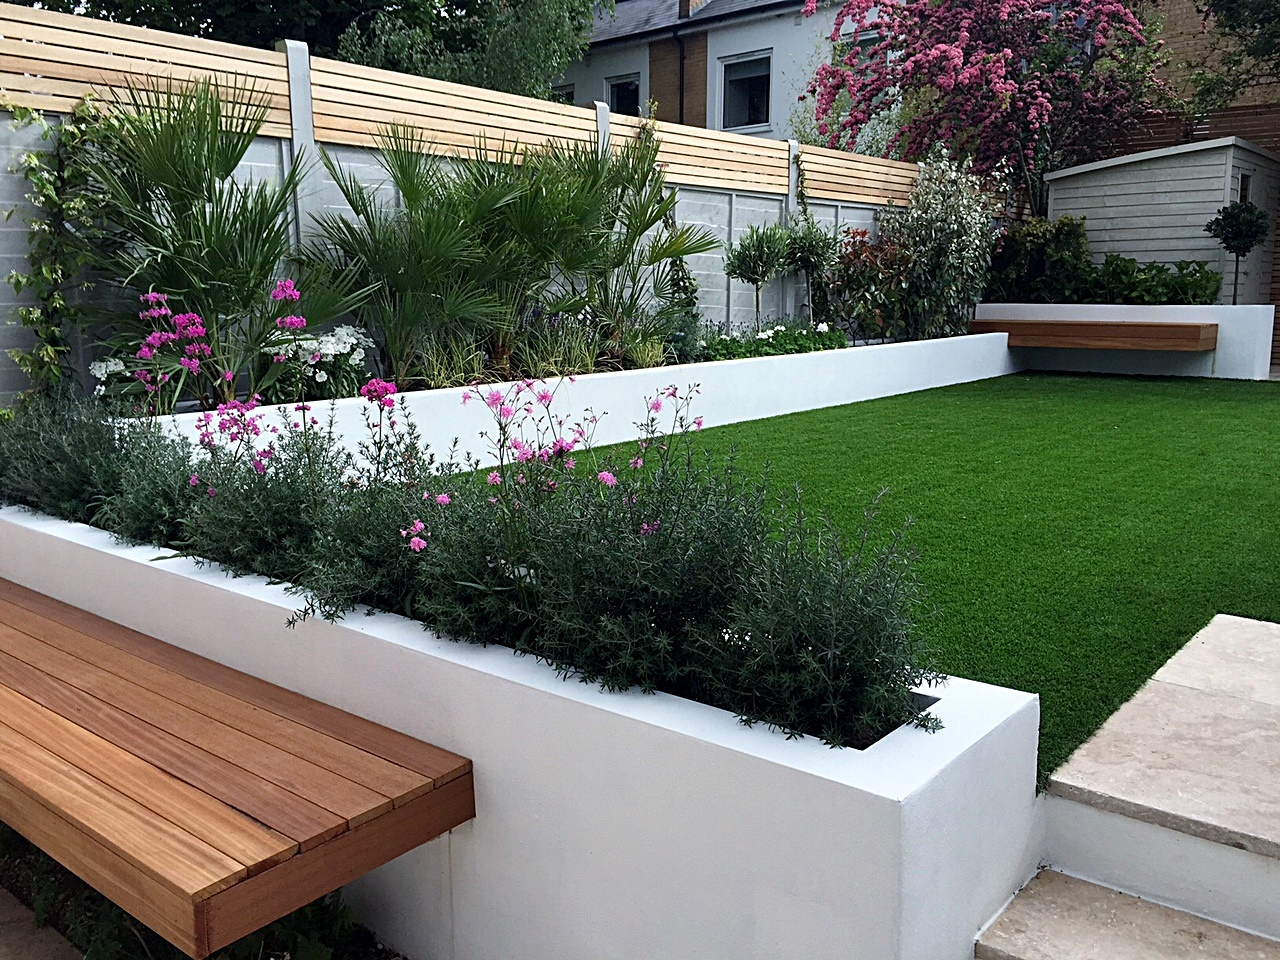 Modern Garden Design Fulham Chelsea Clapham Grass Travertine Paving Peckham